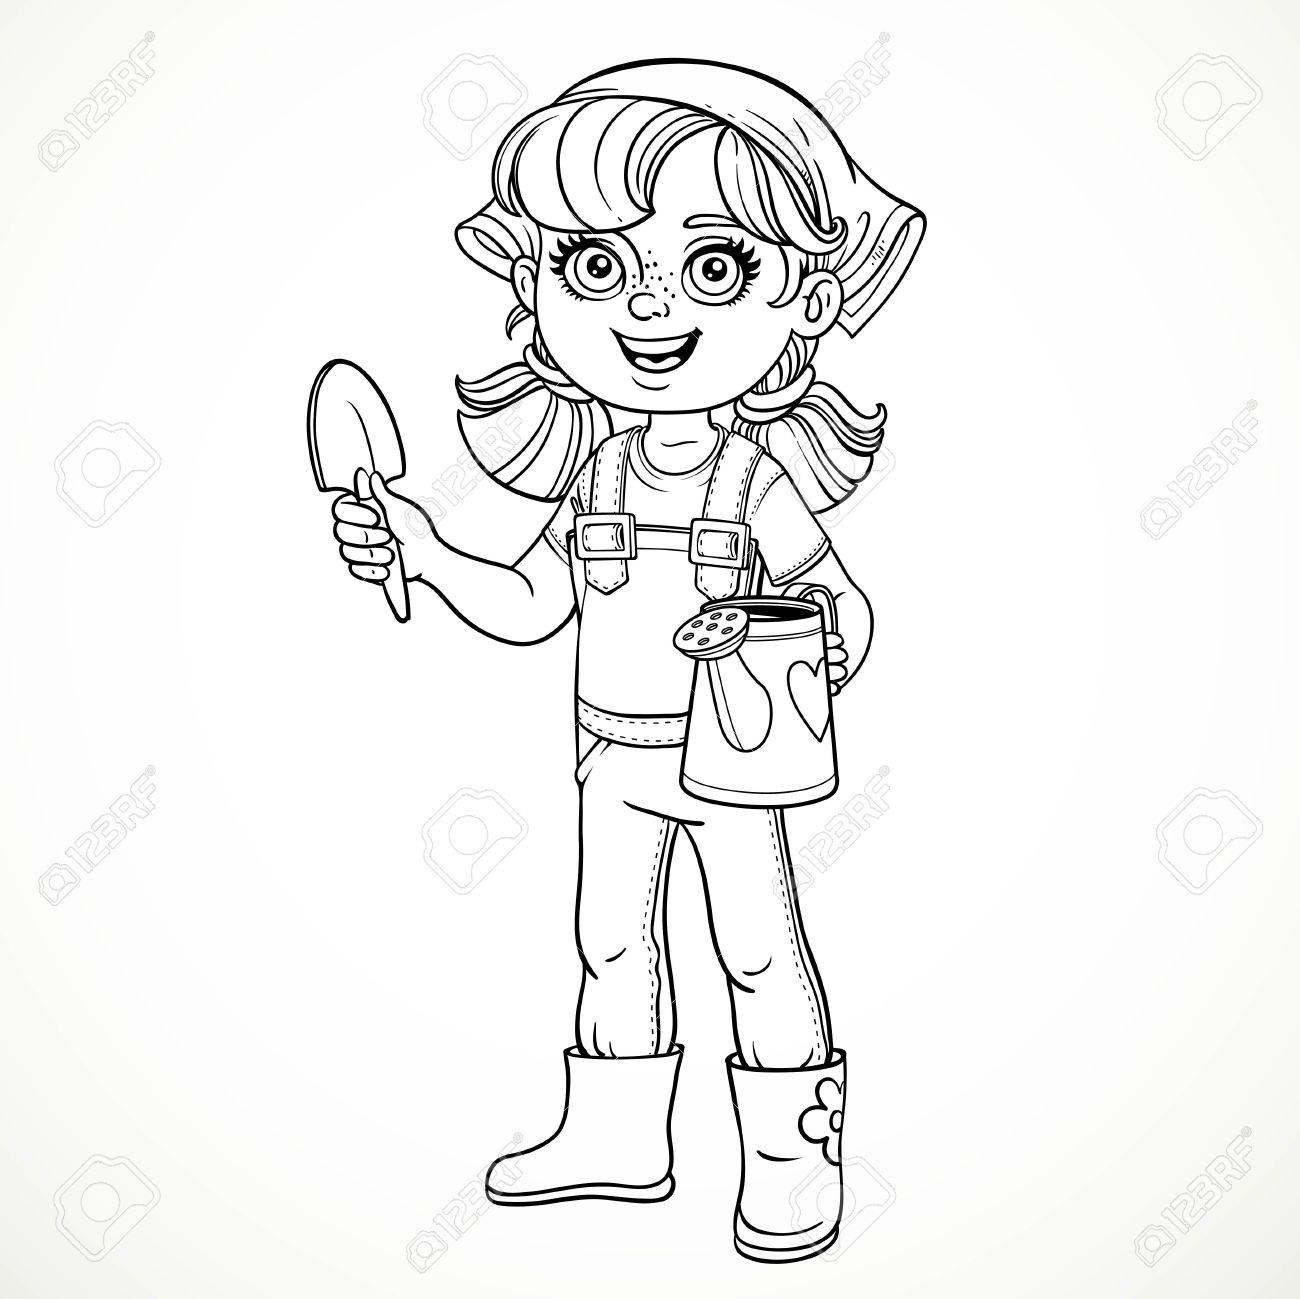 1300x1299 Cute Little Girl In Jeans Overallsnd Rubber Boots Holding